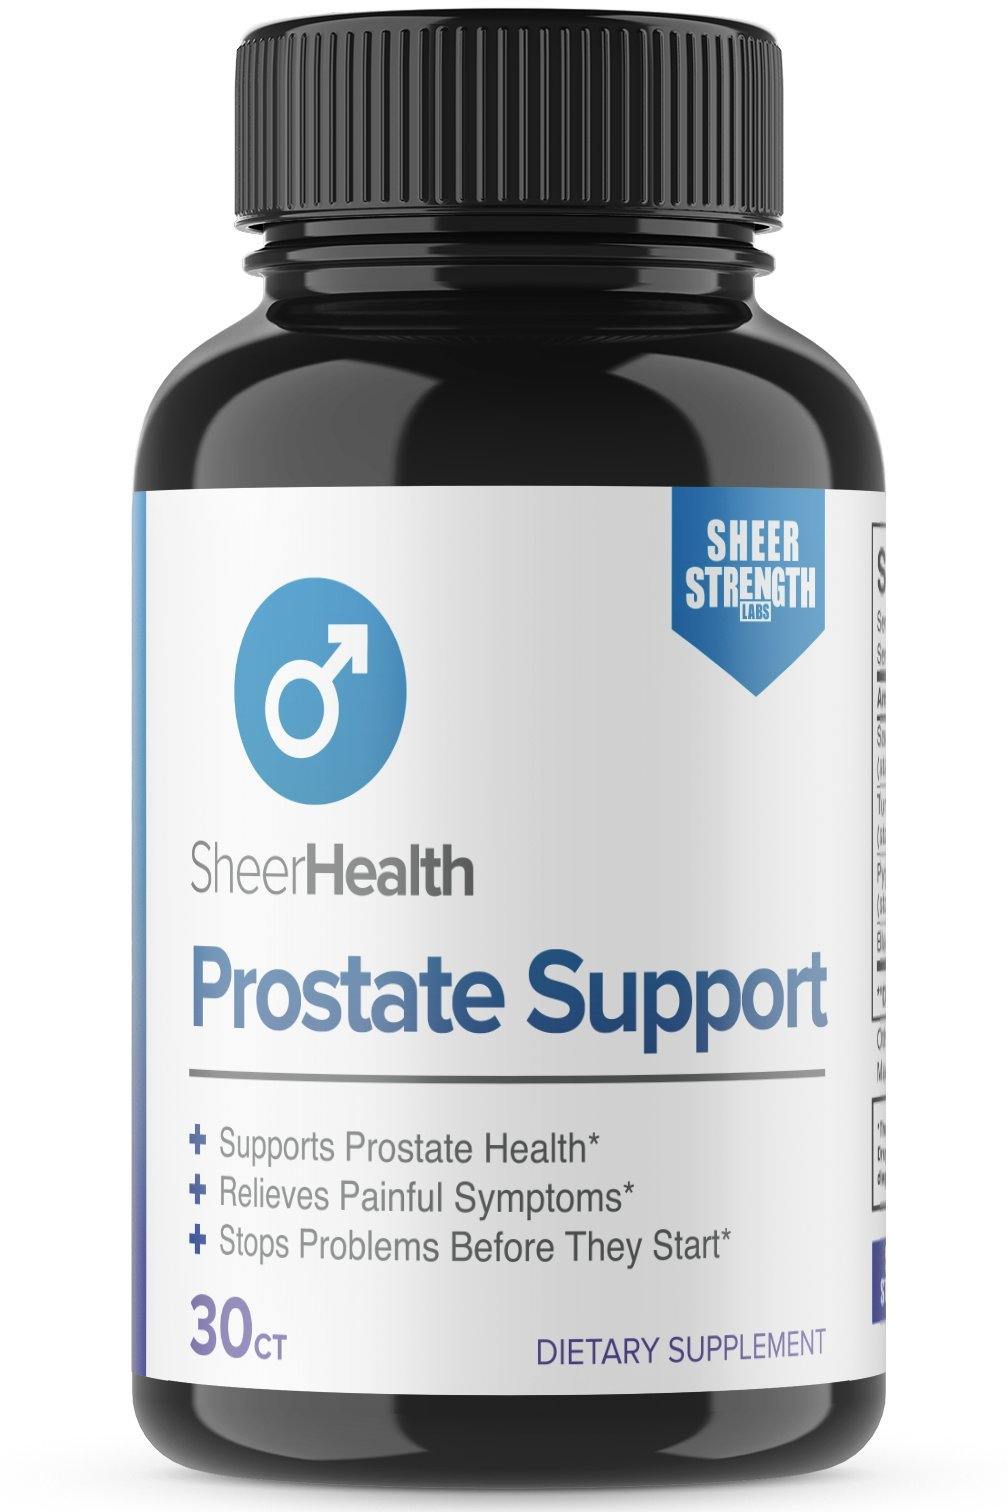 Saw Palmetto Prostate Support Supplement - Natural Herbal Blend for Reducing Frequent and Painful Urination and Boosting Libido and Blood Flow, 30 Prostate Supplements Capsules